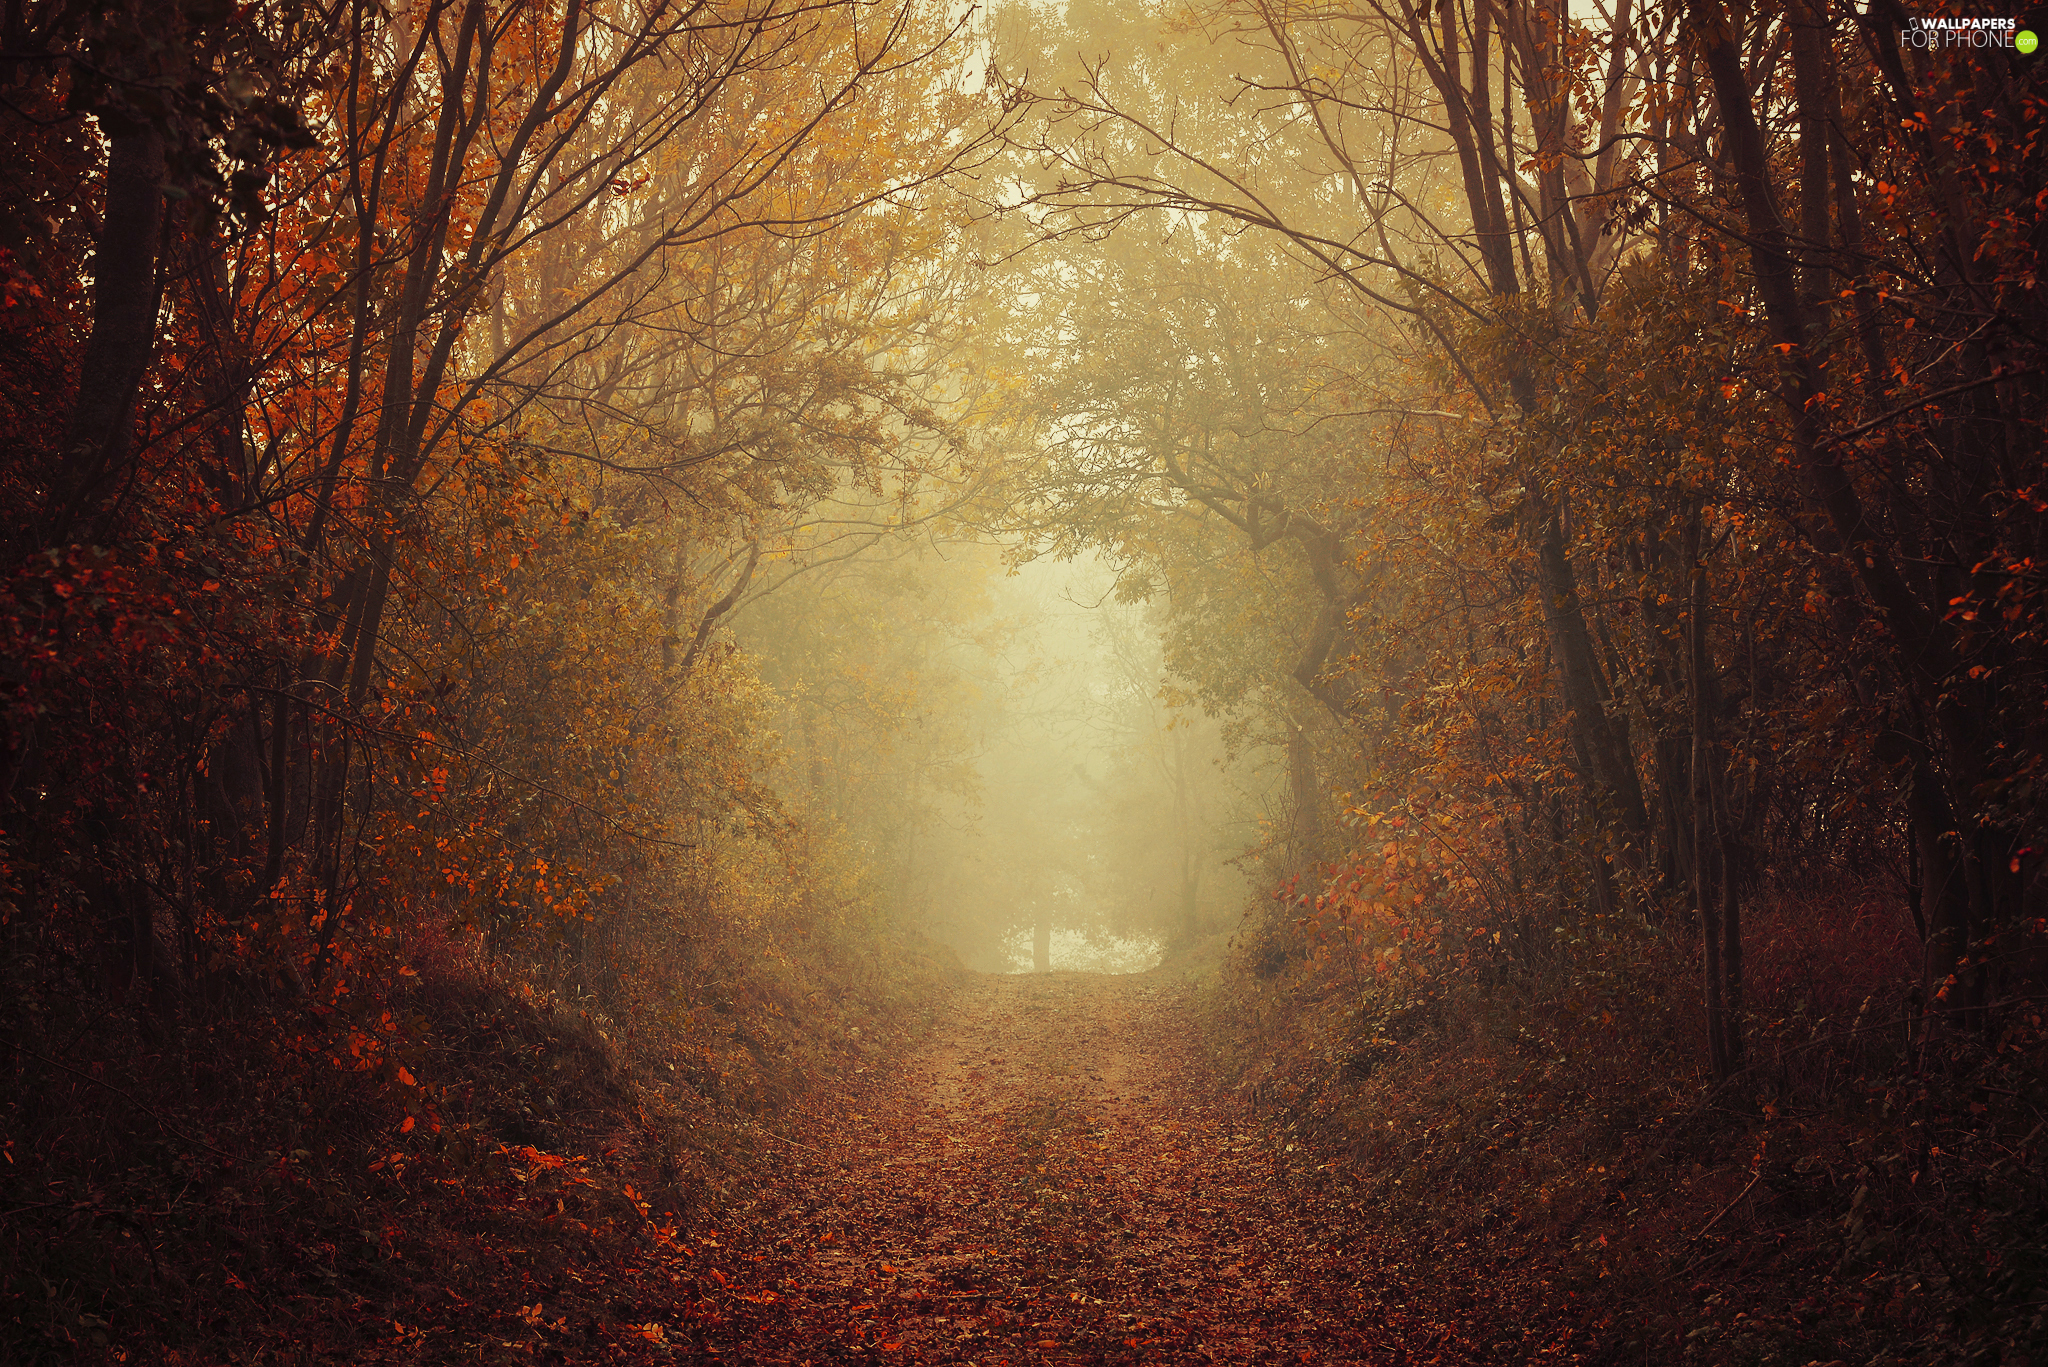 viewes, fallen, autumn, Leaf, Fog, trees, forest, Way